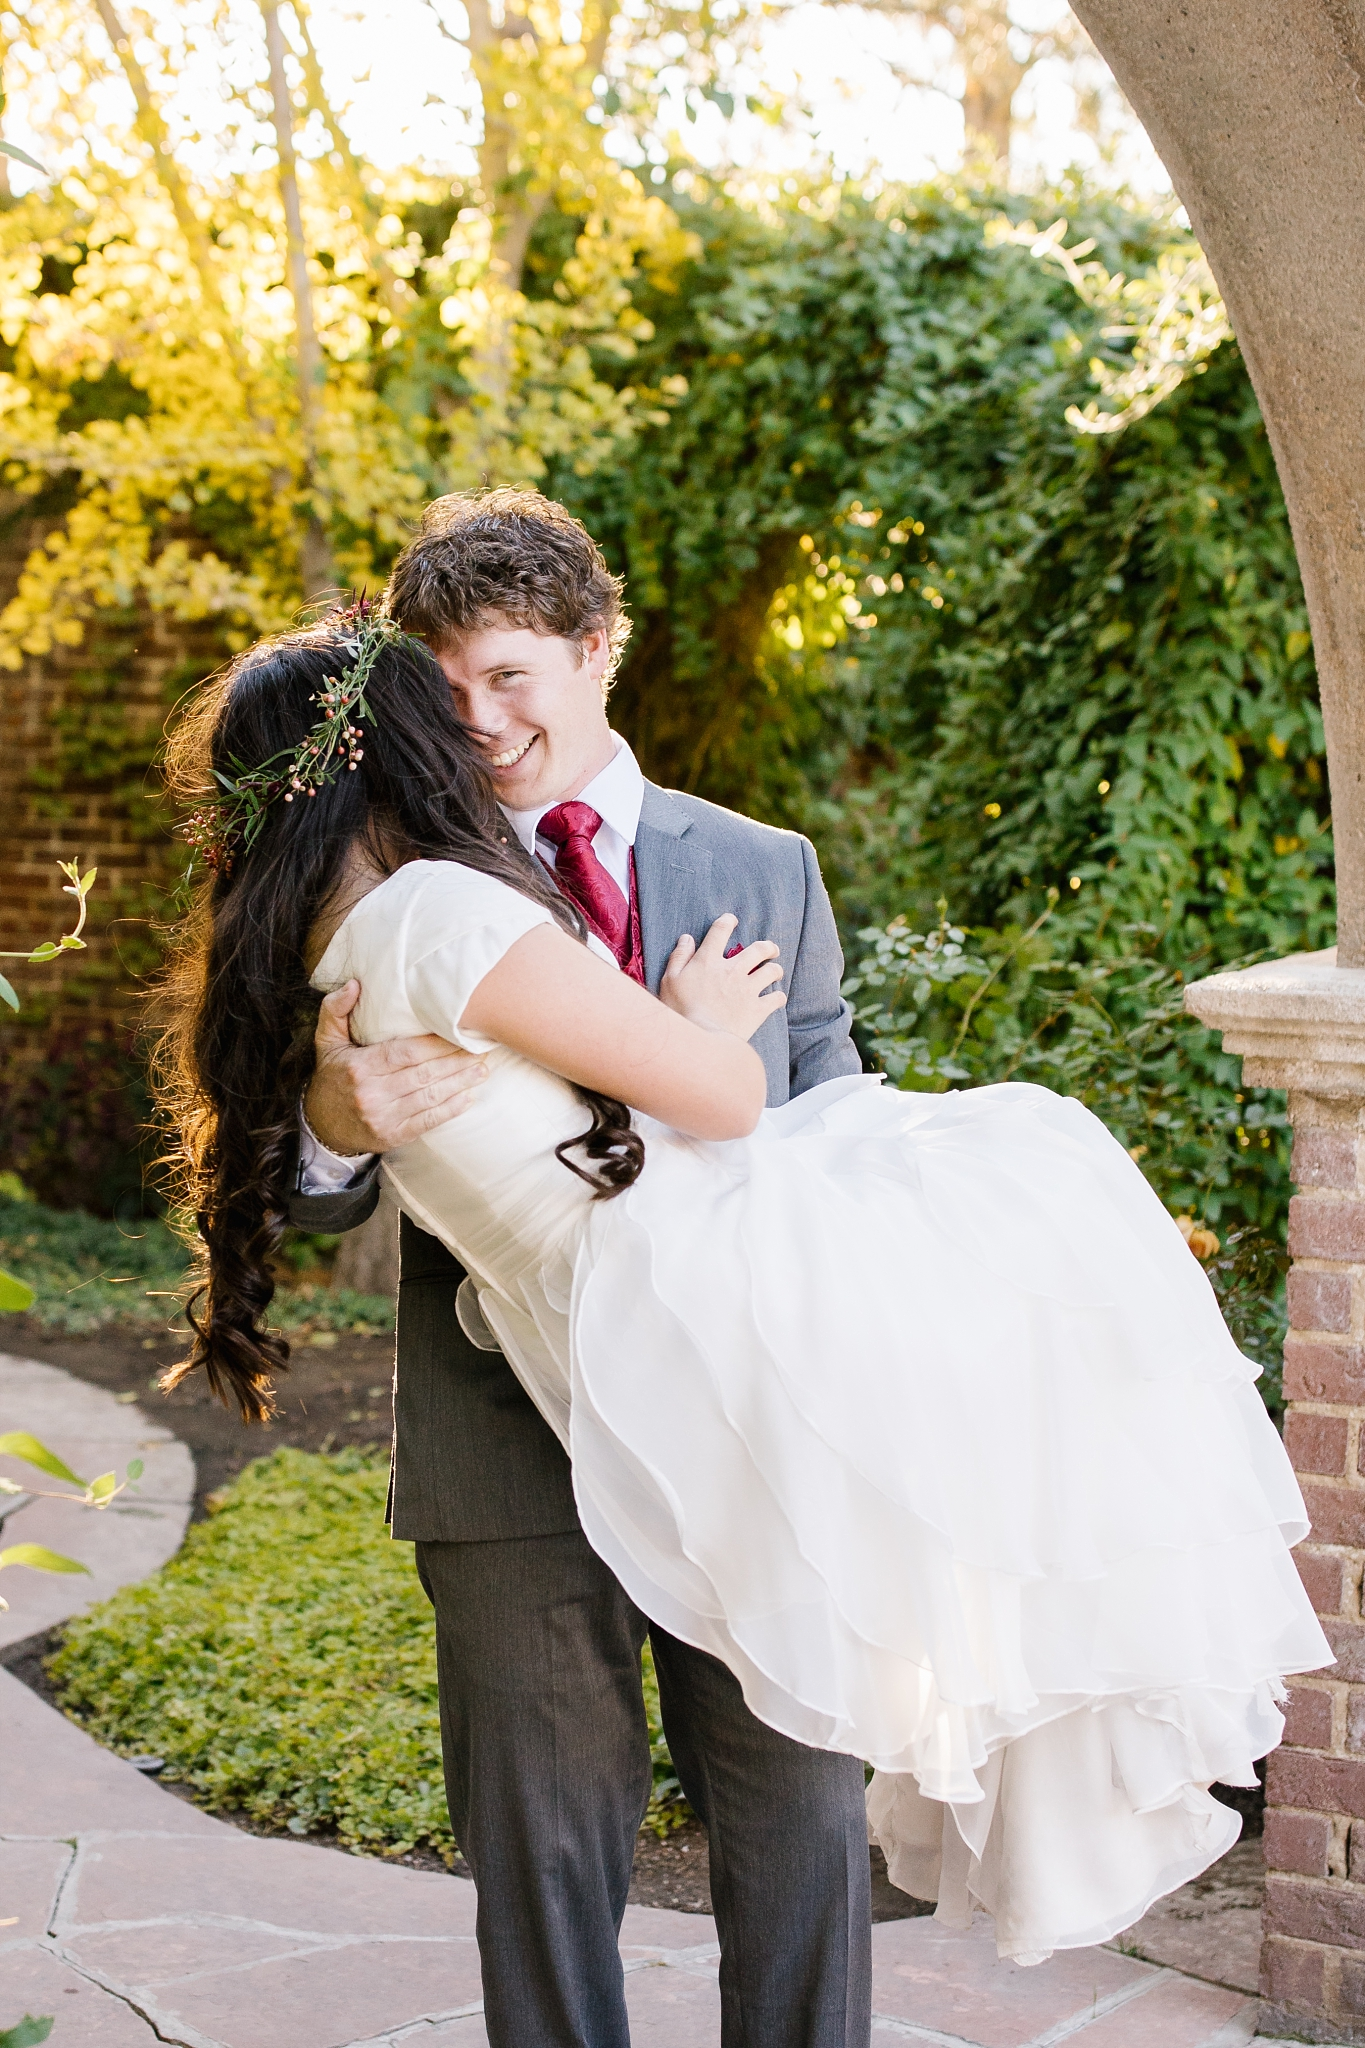 JB-Bridals-12_Lizzie-B-Imagery-Utah-Wedding-Photographer-Thanksgiving-Point-Ashton-Gardens-Lehi-Utah.jpg